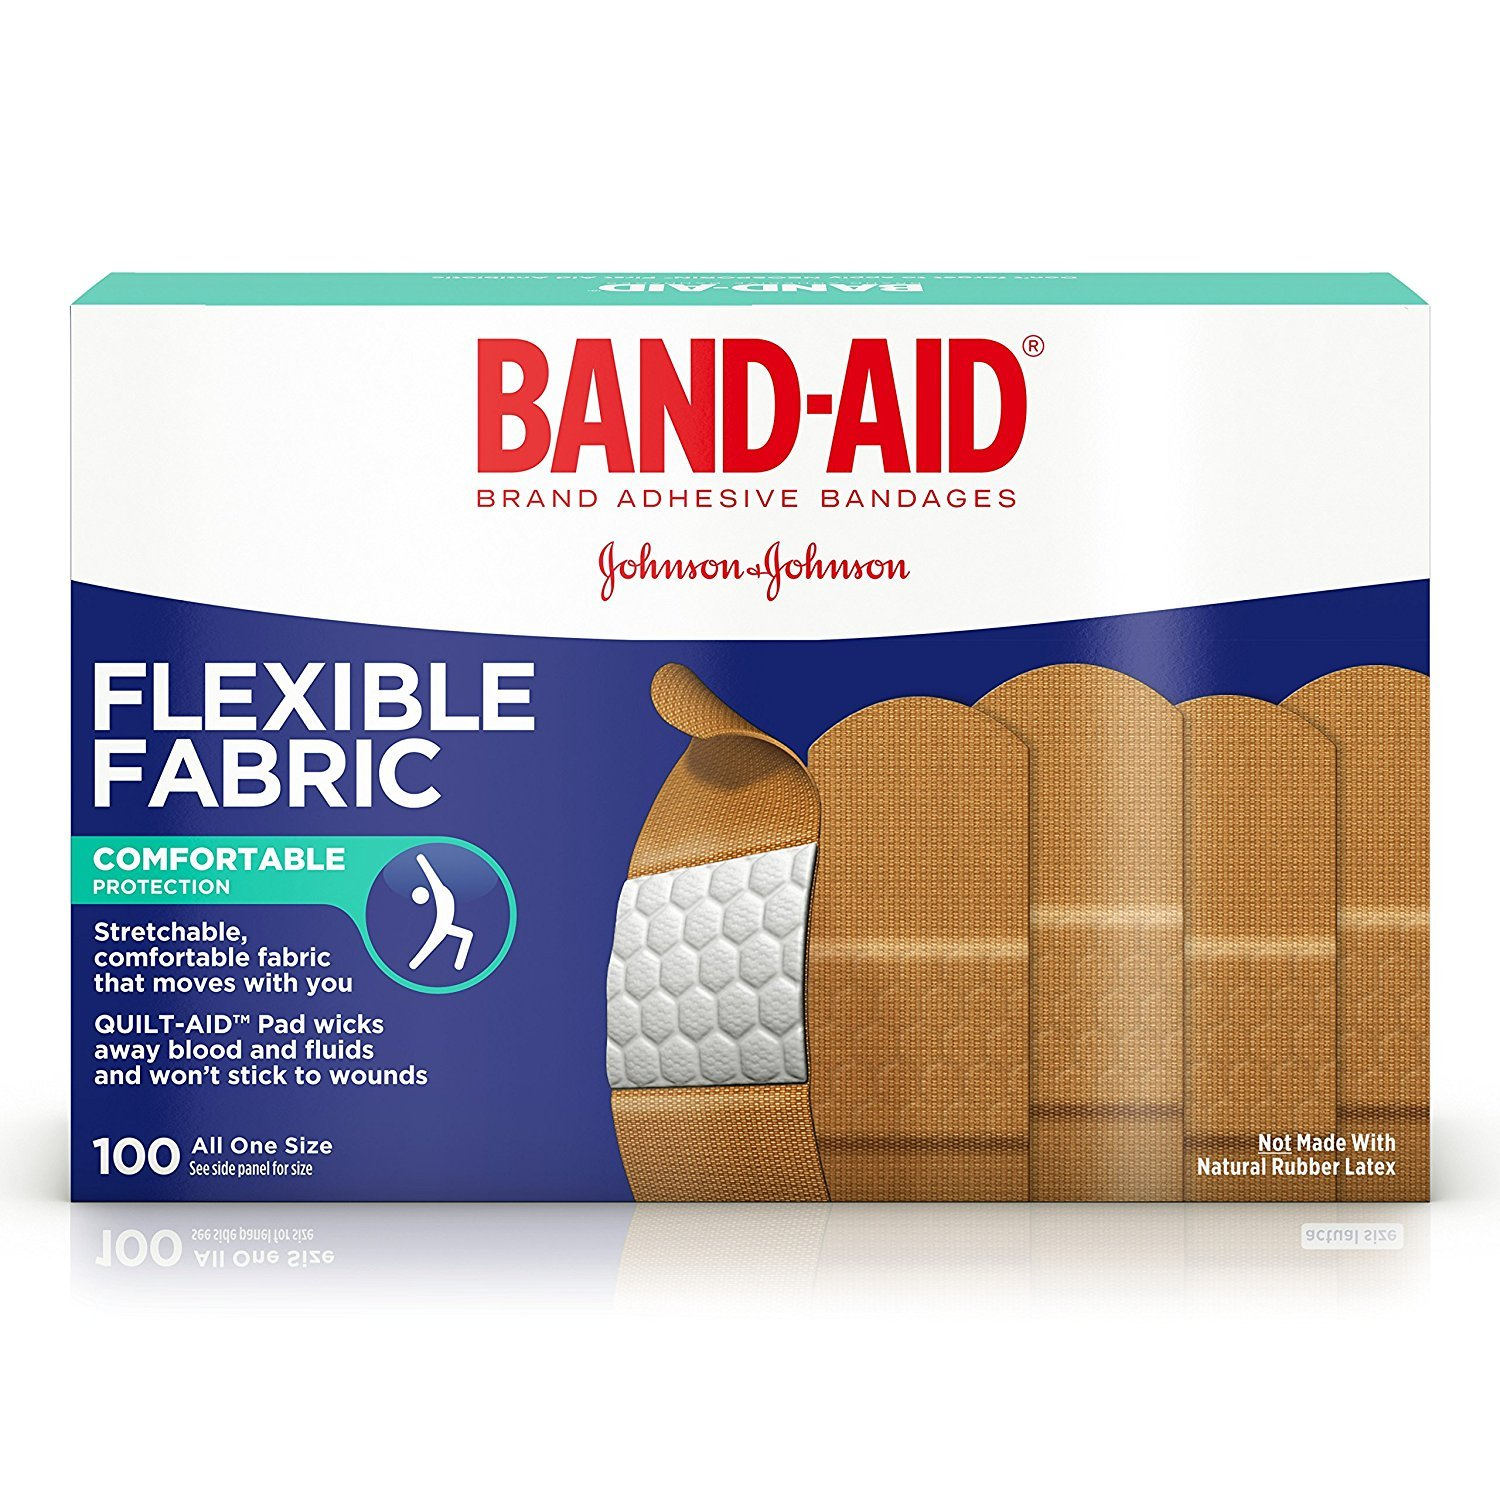 Band-Aid Adhesive Bandages, Flexible Fabric, All One Size 1 X 3 , 100 Count (Pack of 3) by Band-Aid